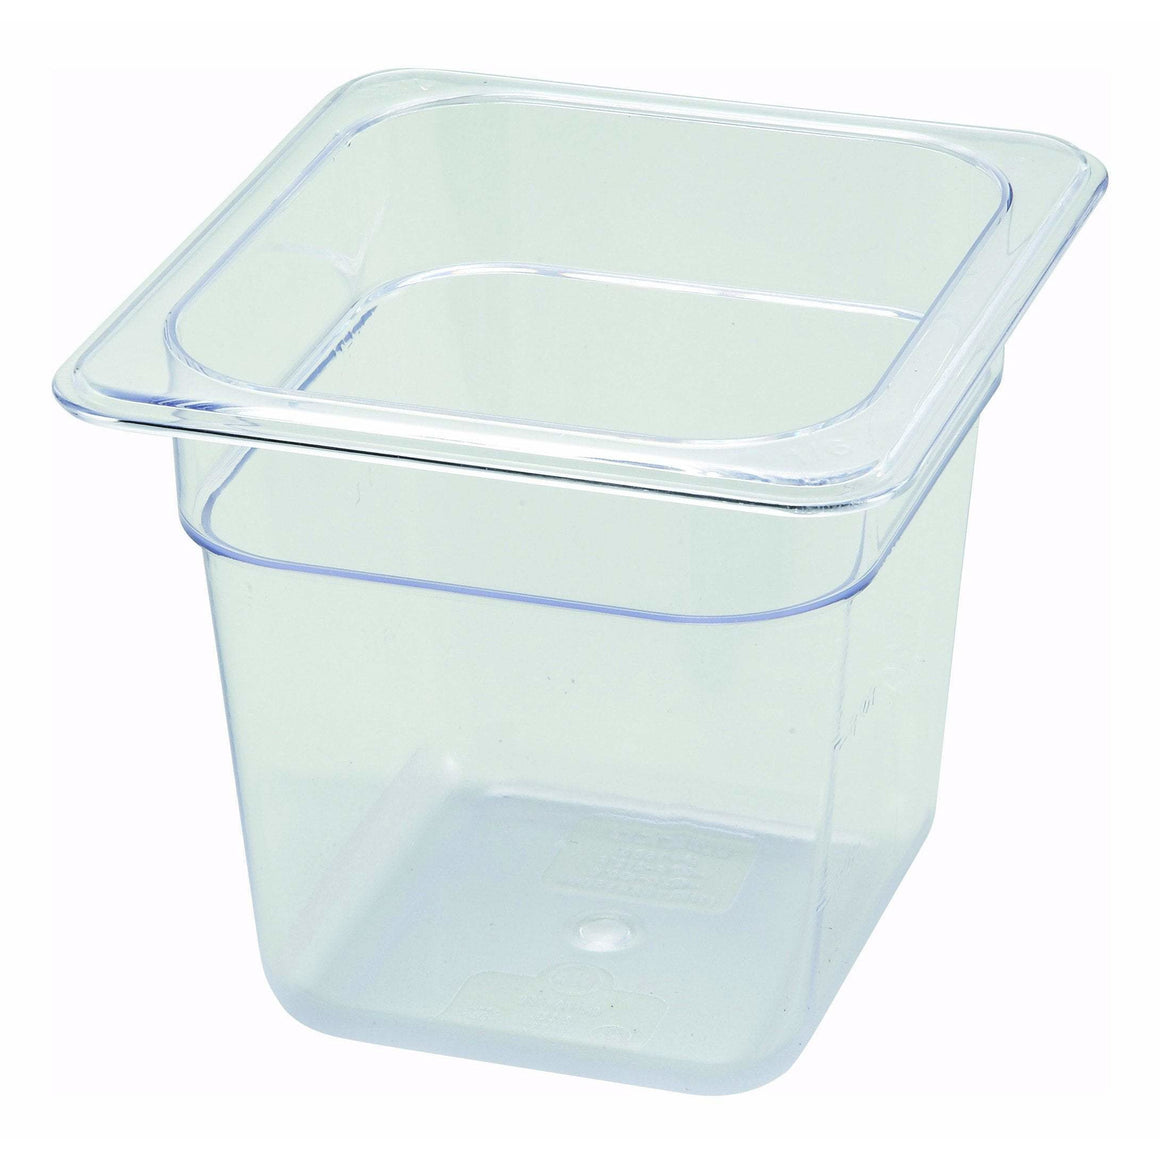 "Winco - SP7606 - PC Food Pan, 1/6 Size, 6"" - Food Storage"